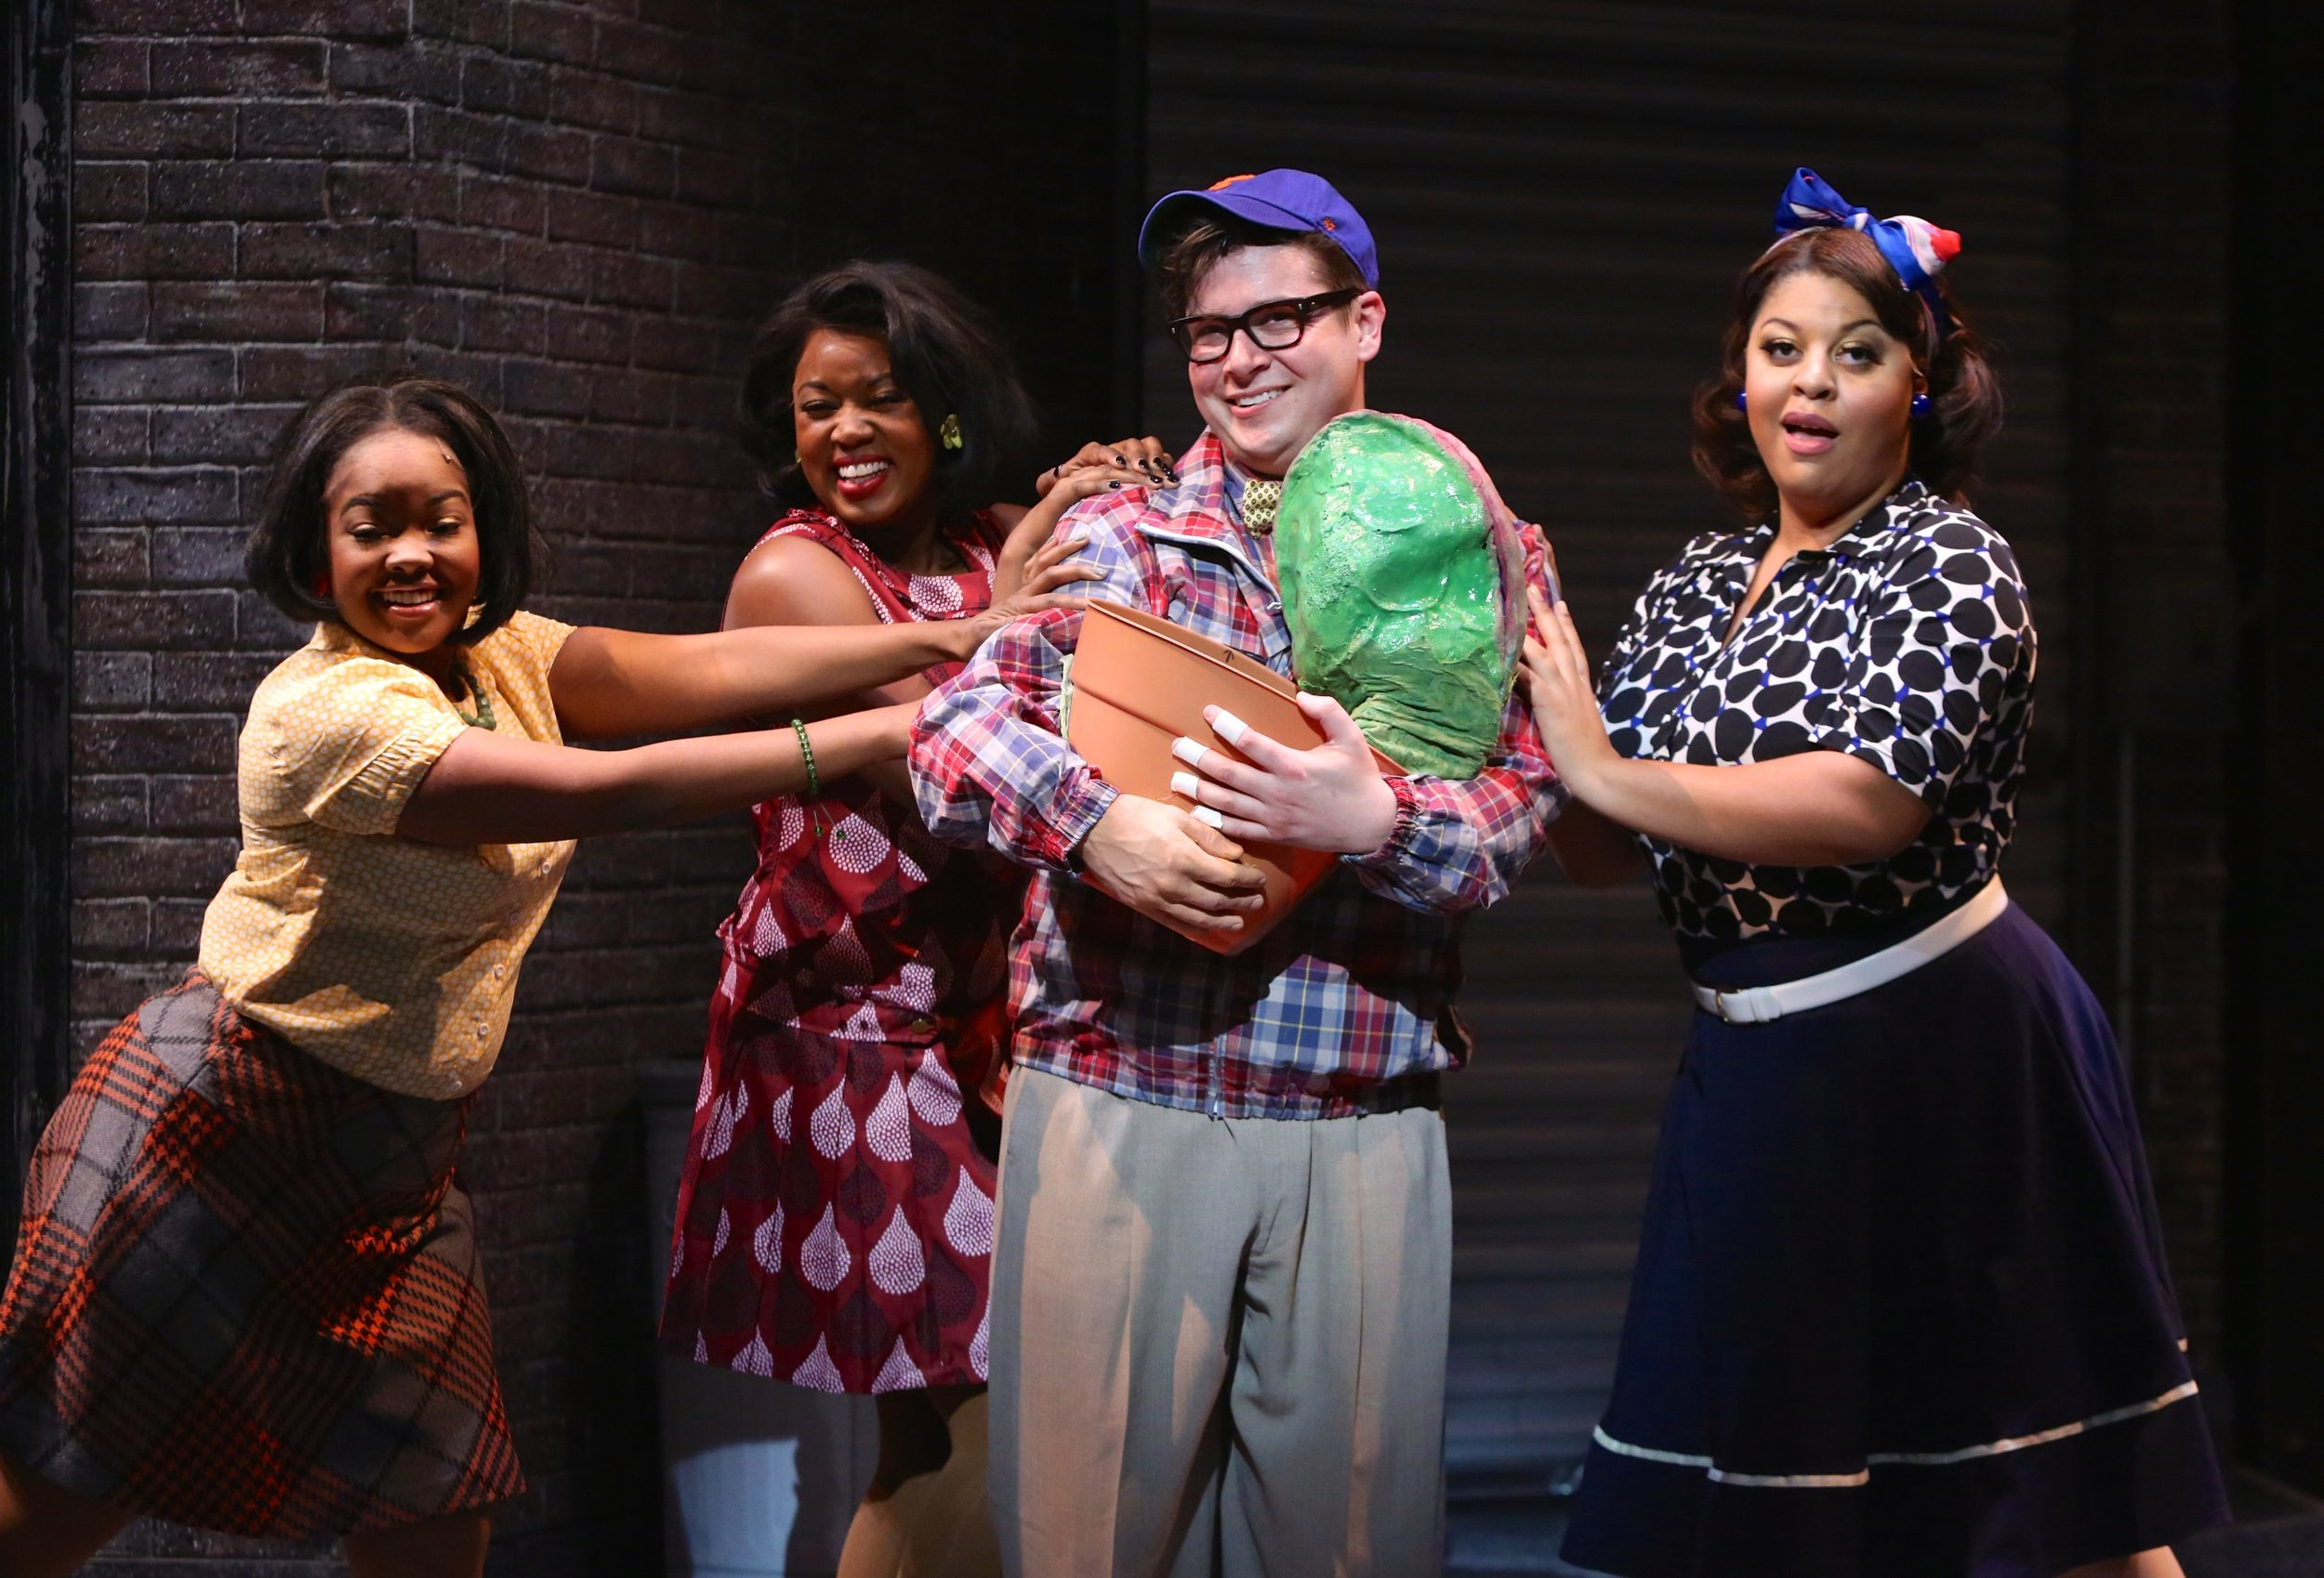 Seymour (Will Blum) and the Ronnettes: Trista Dollison, Talitha Farrow and Gavyn Pickens. Photo by Ken Huth.